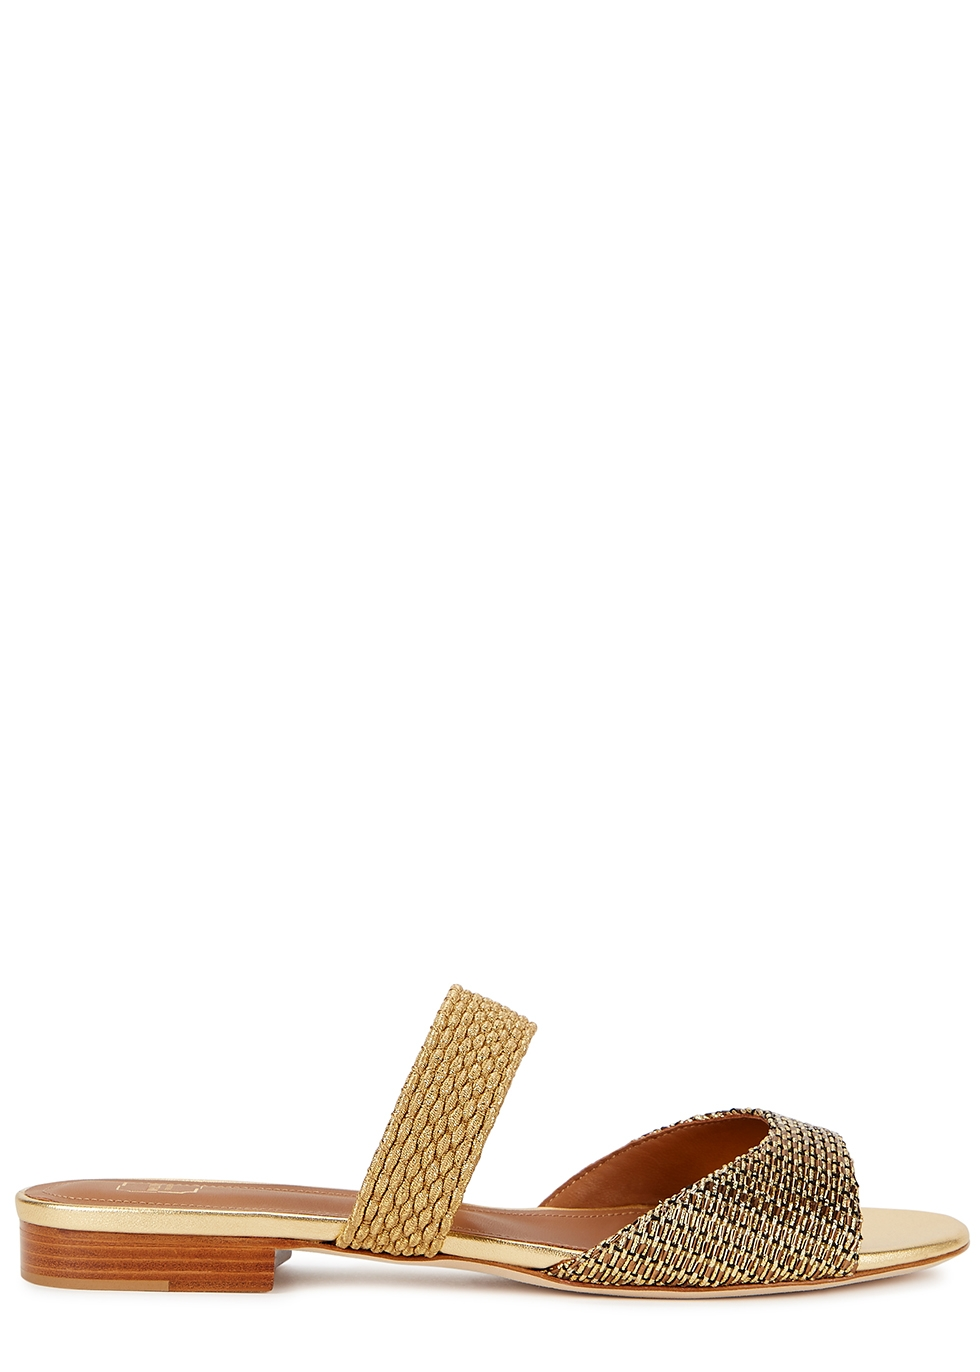 Milena 10 gold leather and Lurex sandals